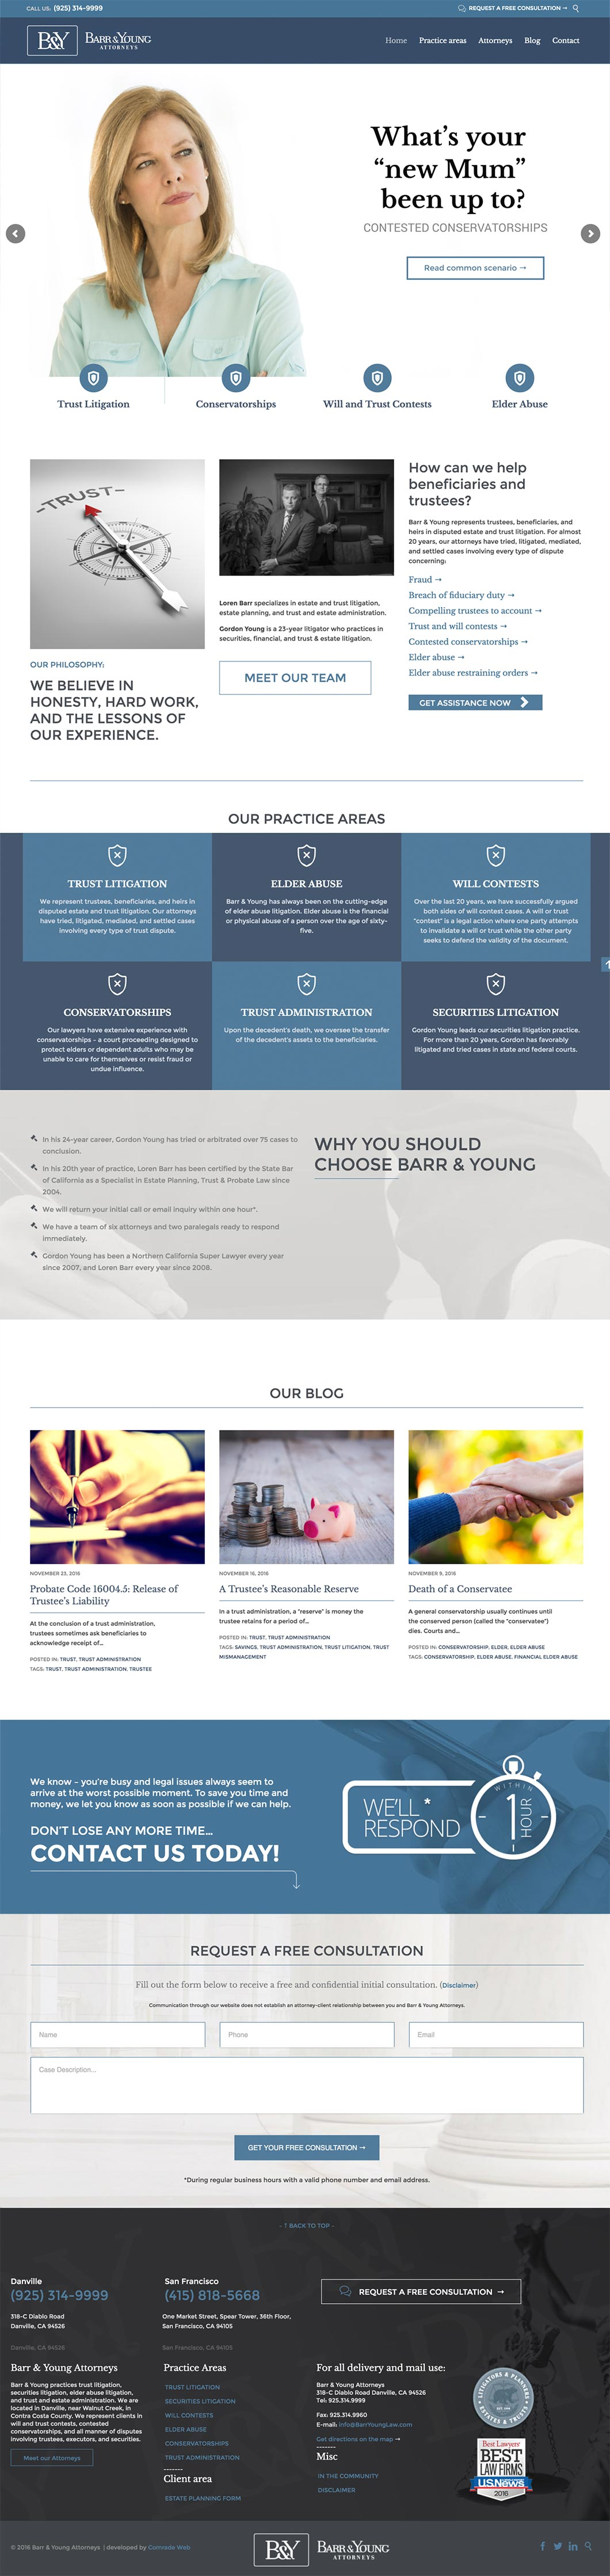 Barr & Young Attorneys Homepage